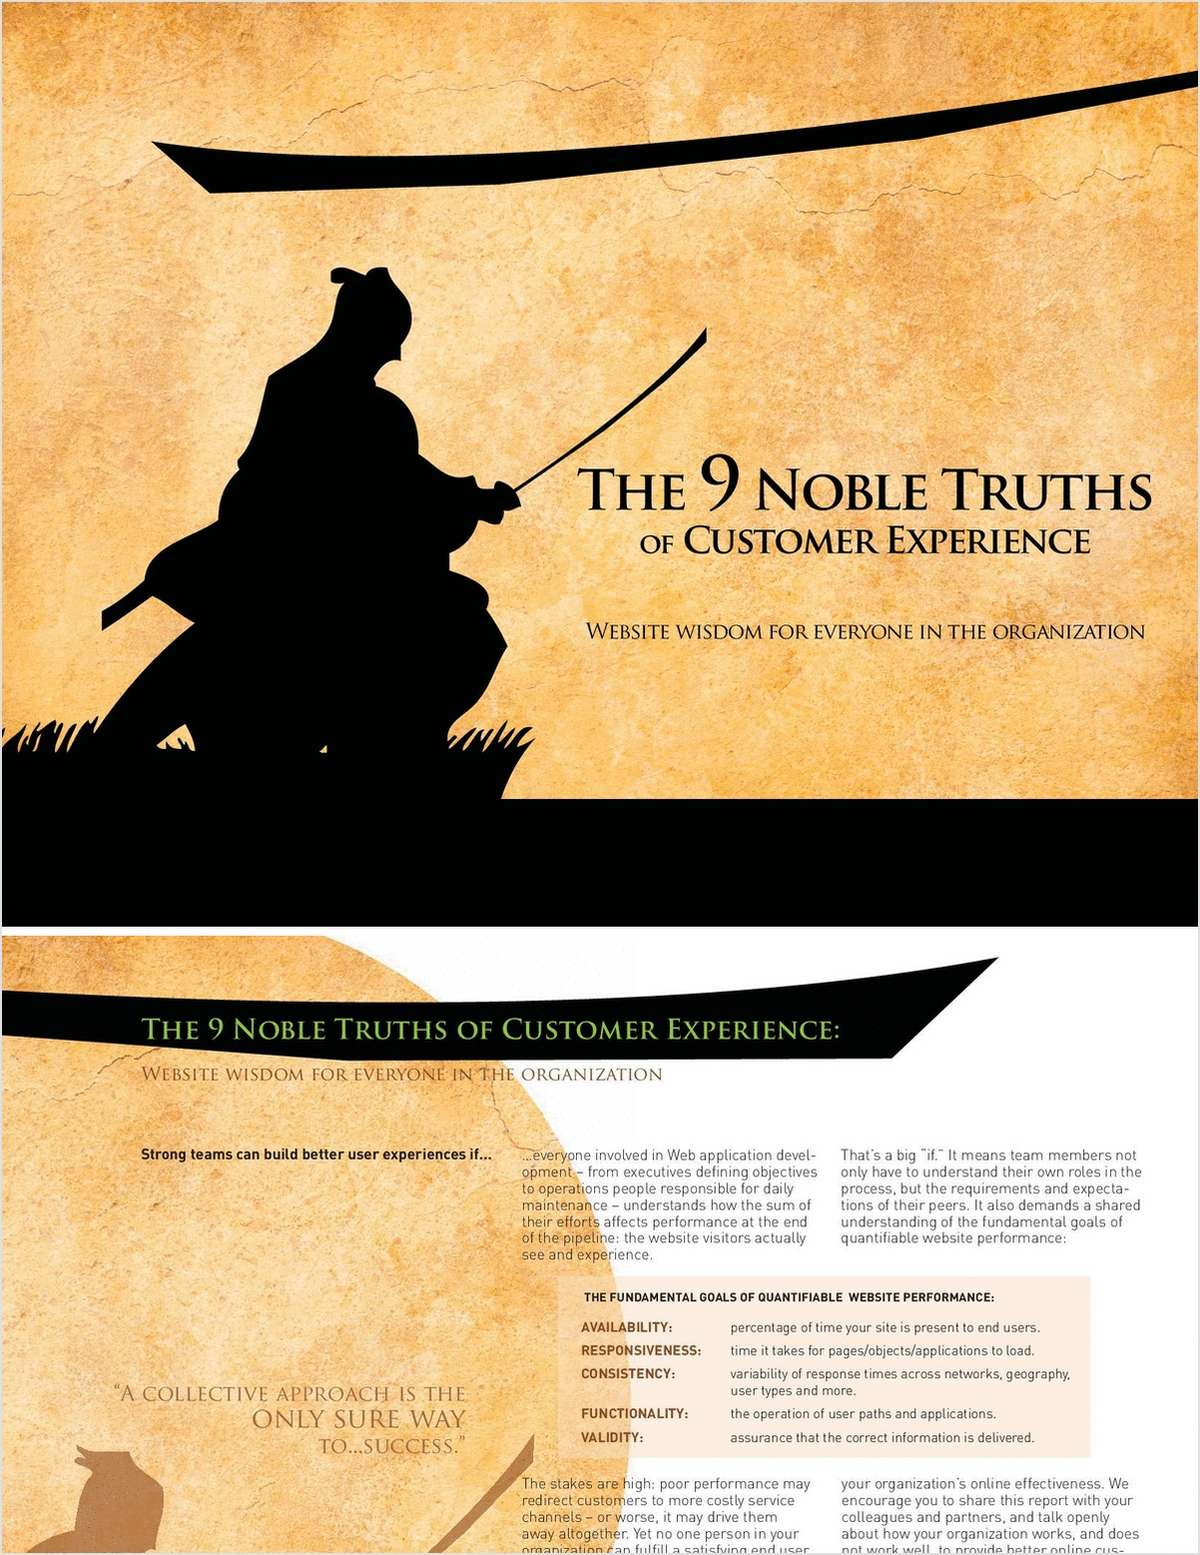 The 9 Noble Truths of Customer Experience